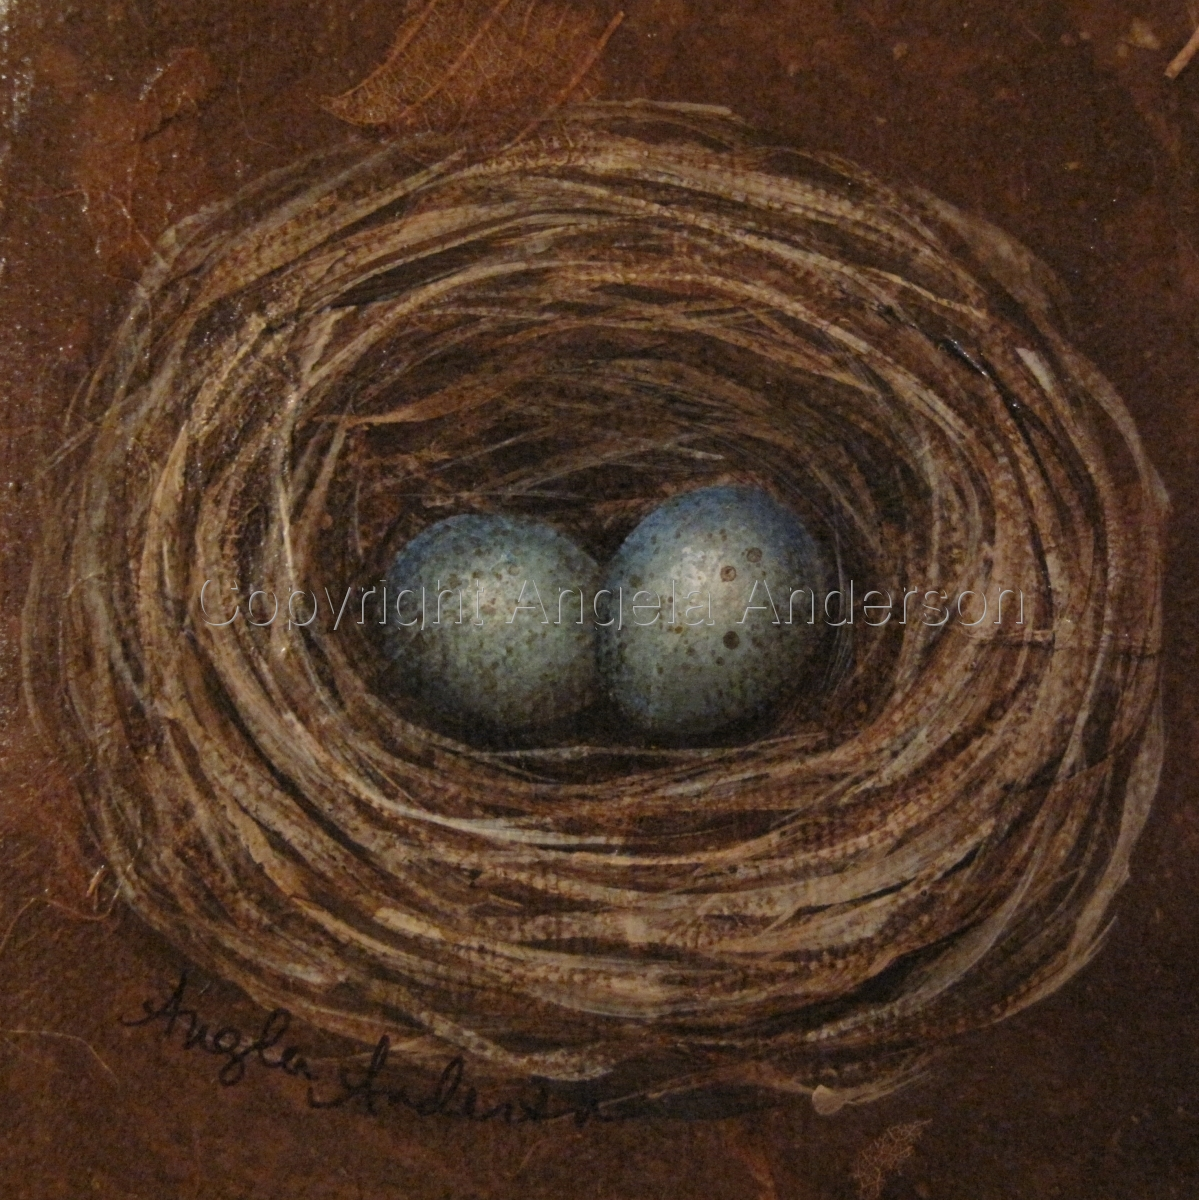 Sweet mini nest painting by artist Angela Anderson.  Mixed media, acrylics on canvas. (large view)